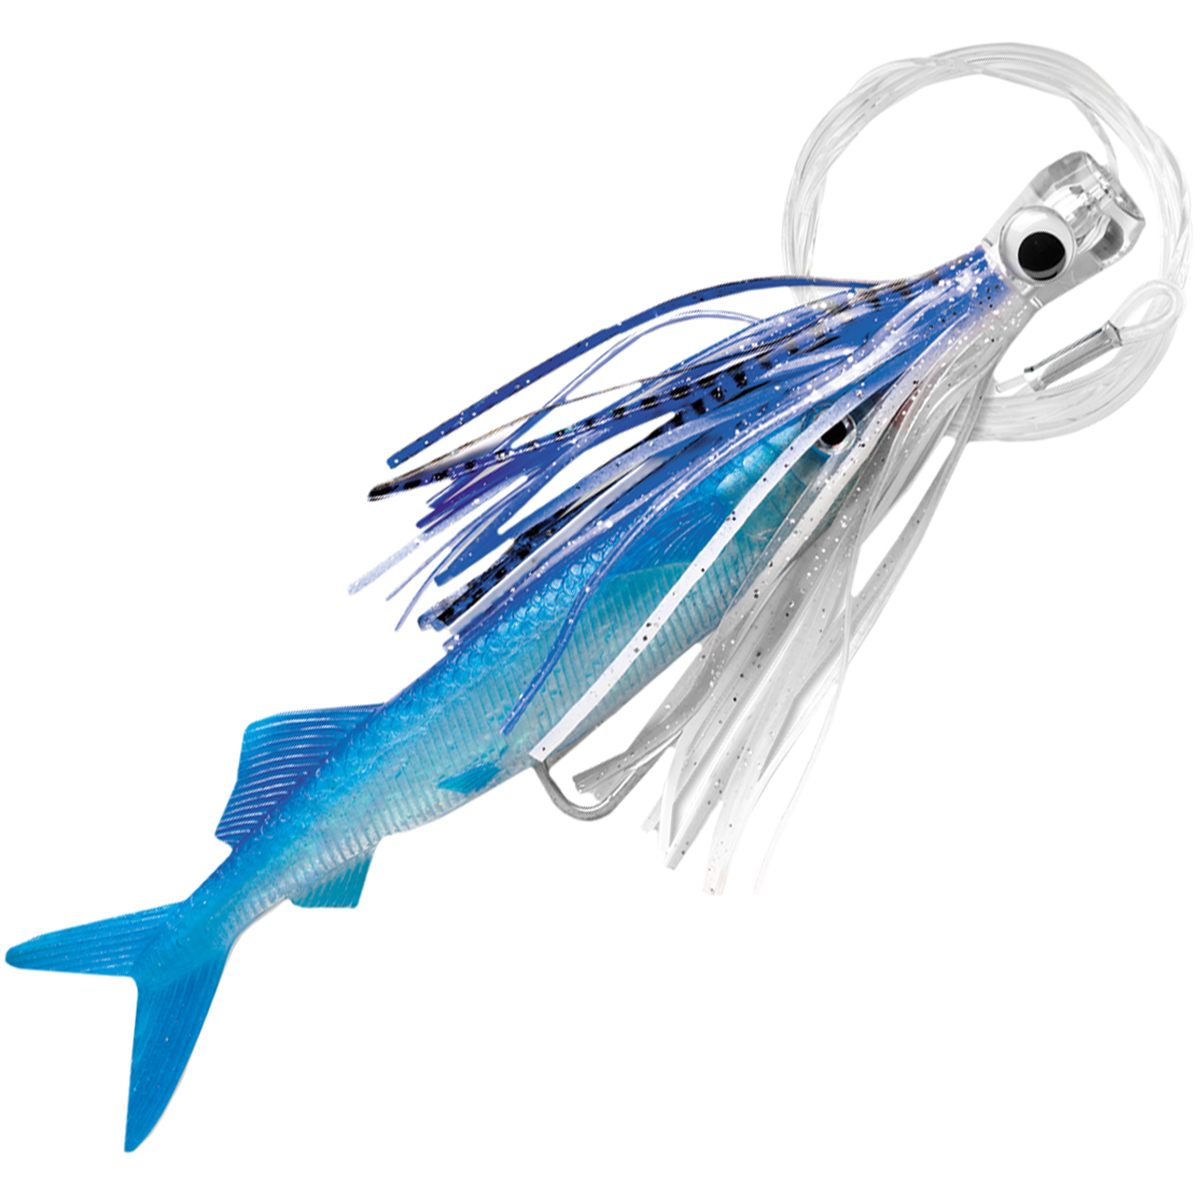 Williamson Live Ballyhoo Combo Rig Fishing Lure - 10.5""